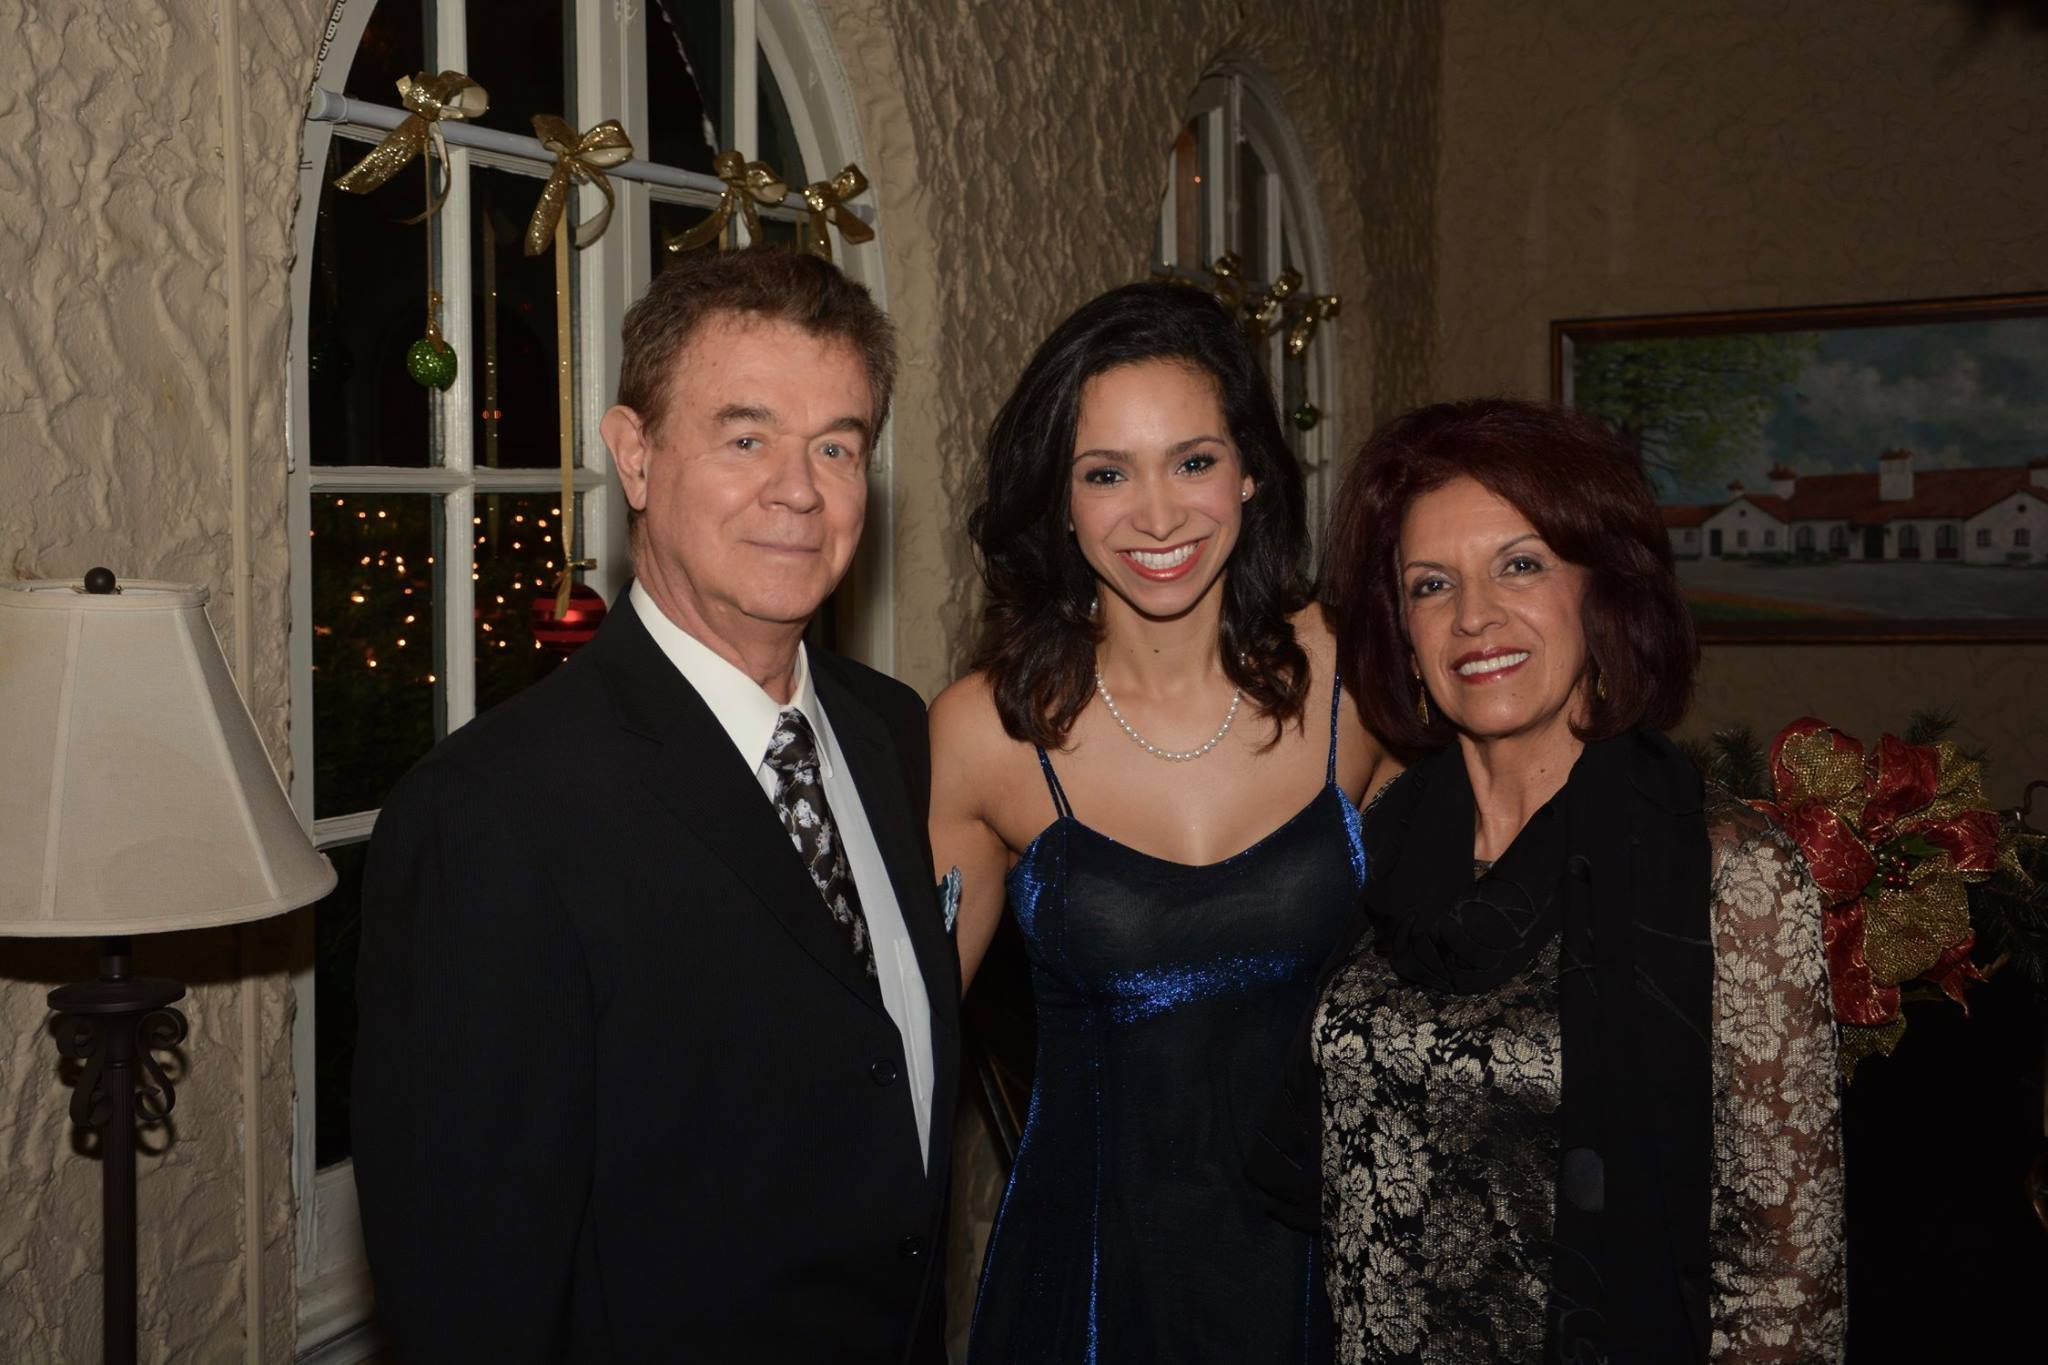 Juliana with her parents, who will be there to see her dance.